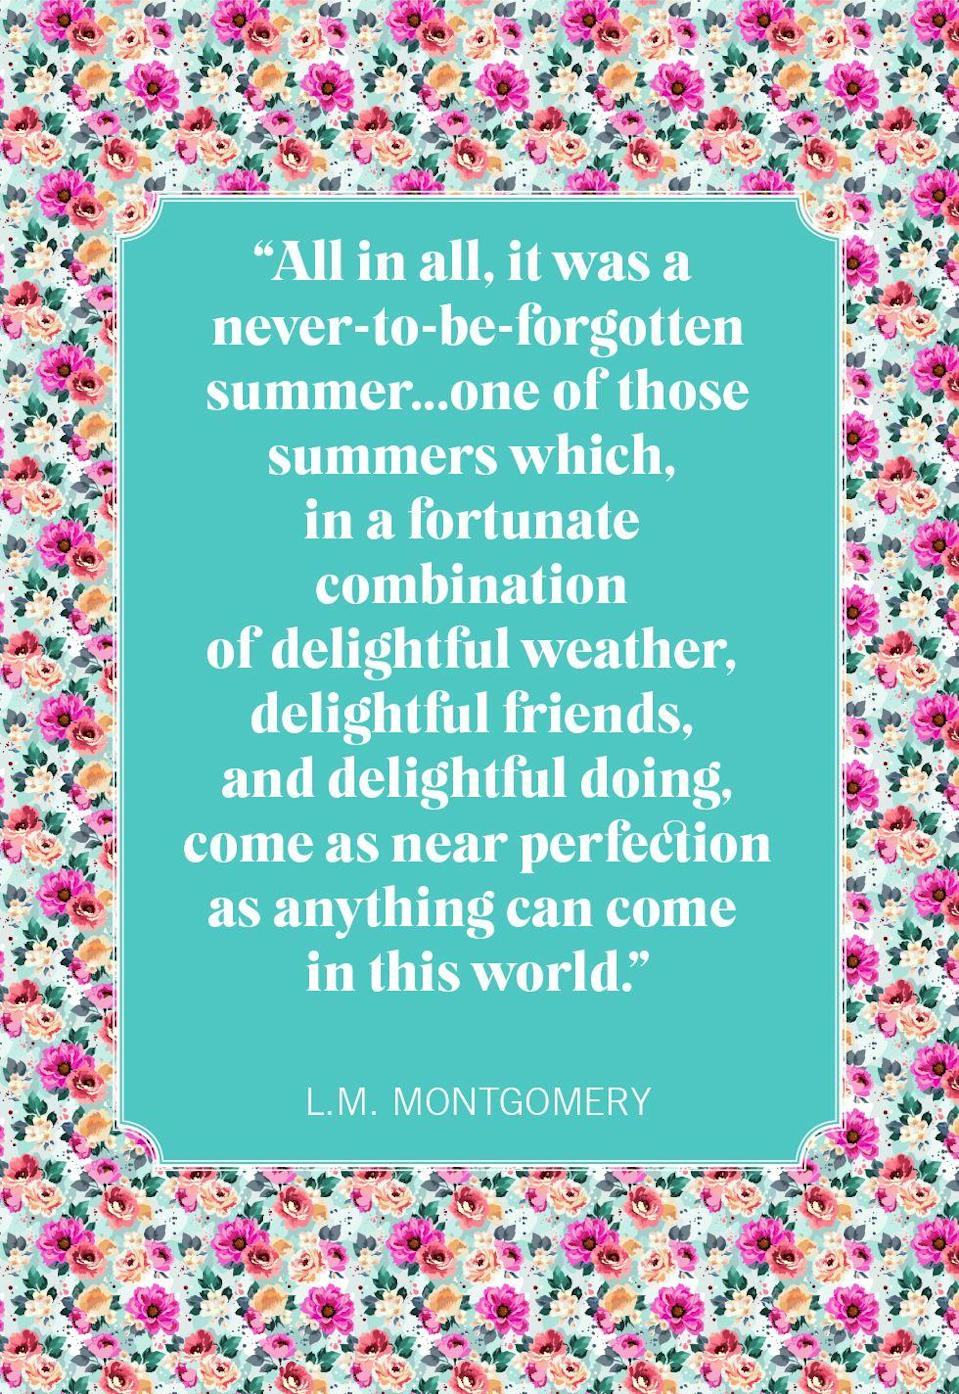 """<p>""""All in all, it was a never-to-be-forgotten summer... one of those summers which, in a fortunate combination of delightful weather, delightful friends, and delightful doing, come as near perfection as anything can come in this world.""""</p>"""